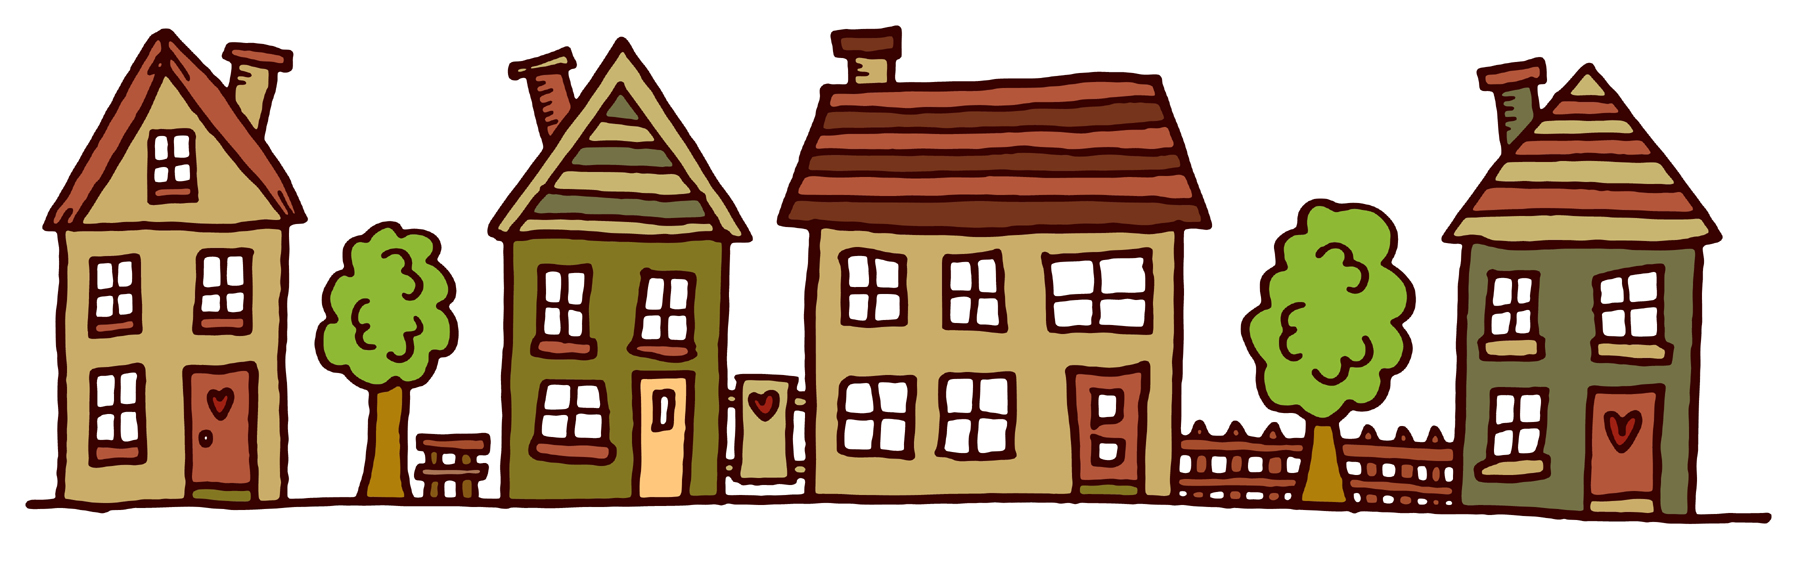 Images For Row Of Houses Clipart